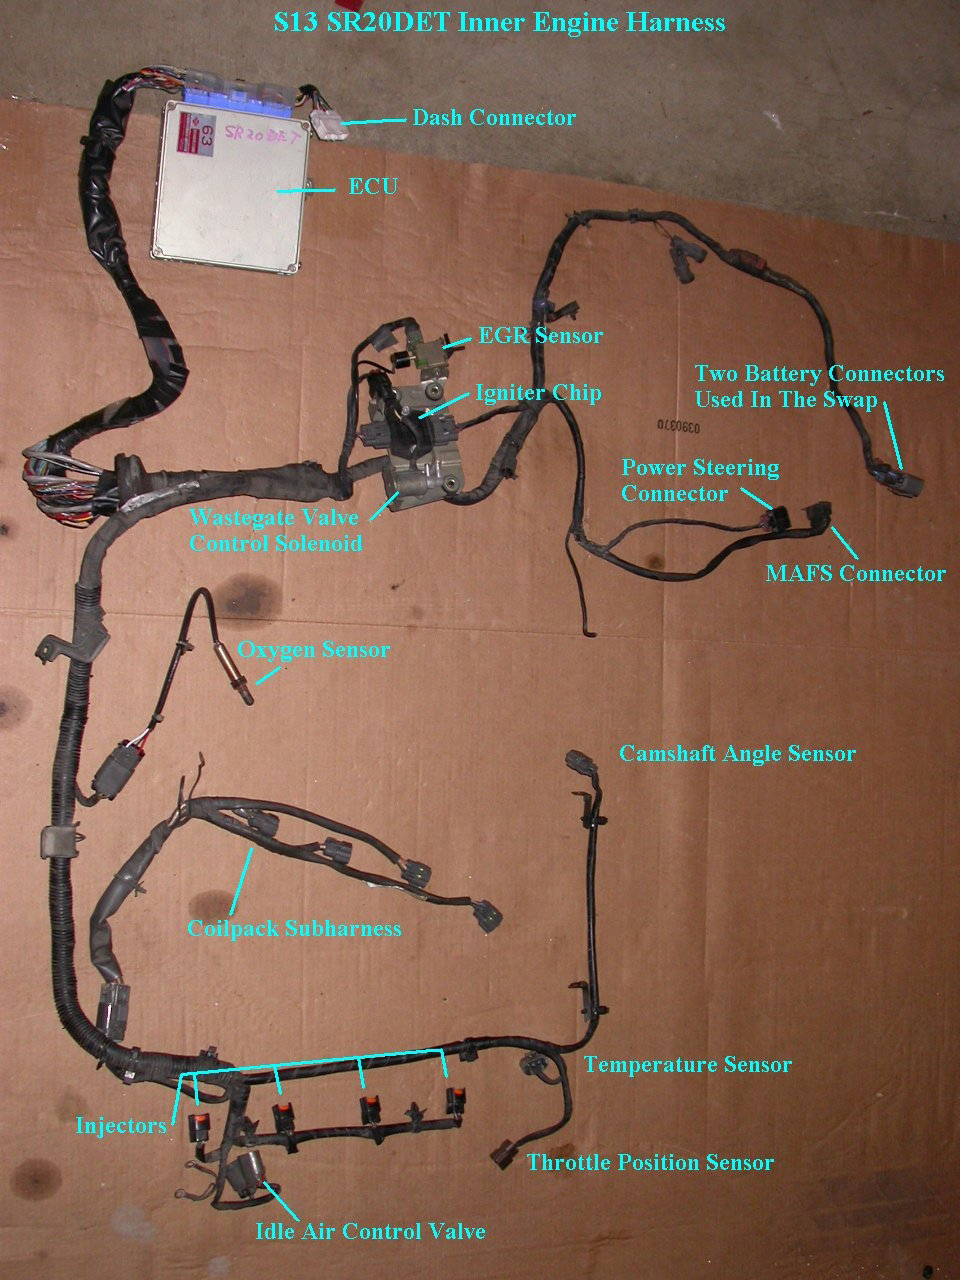 Sr20 Wiring Diagram Libraries Nissan Trailer S13 Sr20det Connector Diagrams13 Data